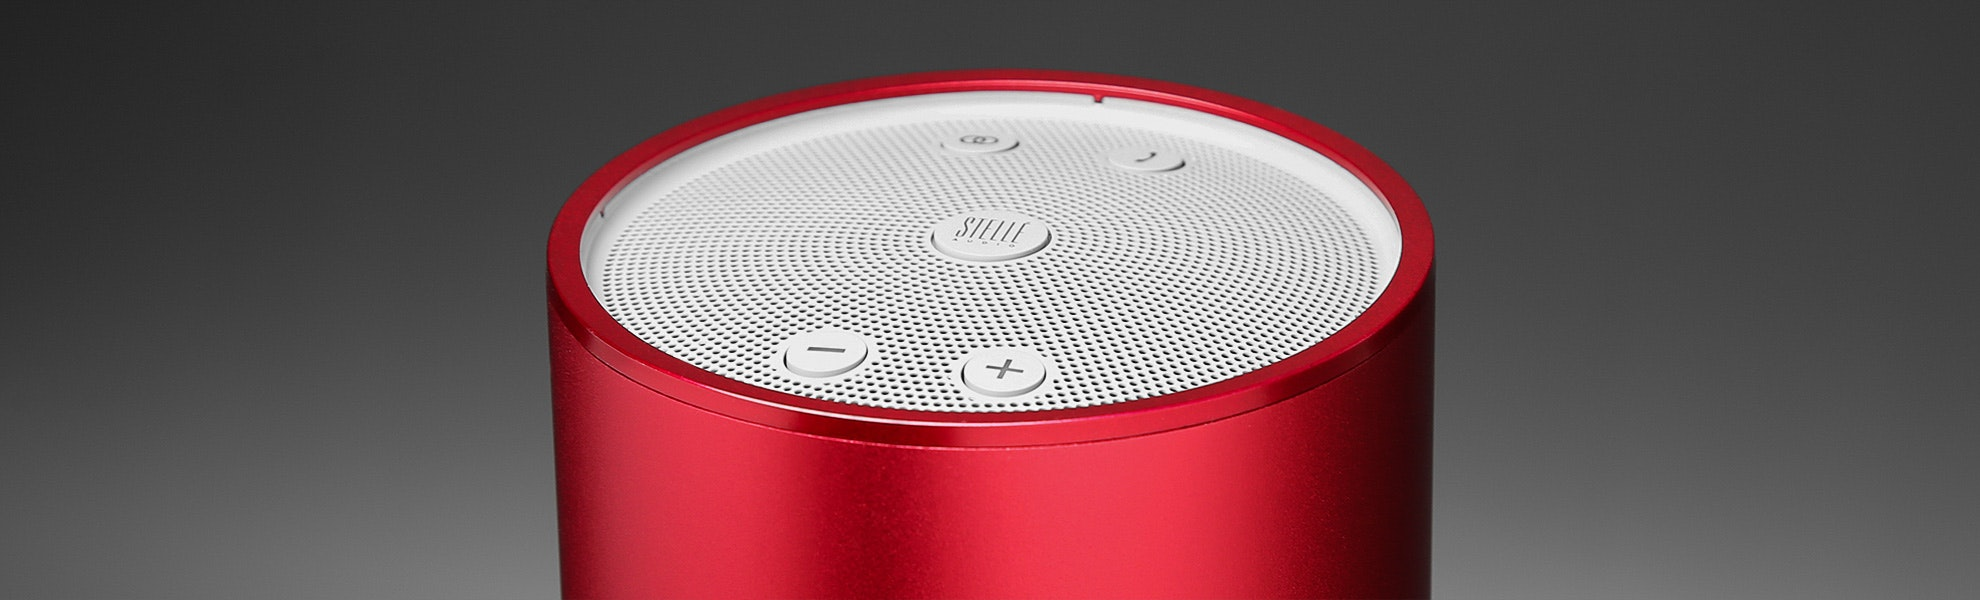 Stellé Audio Pillar Bluetooth Speaker